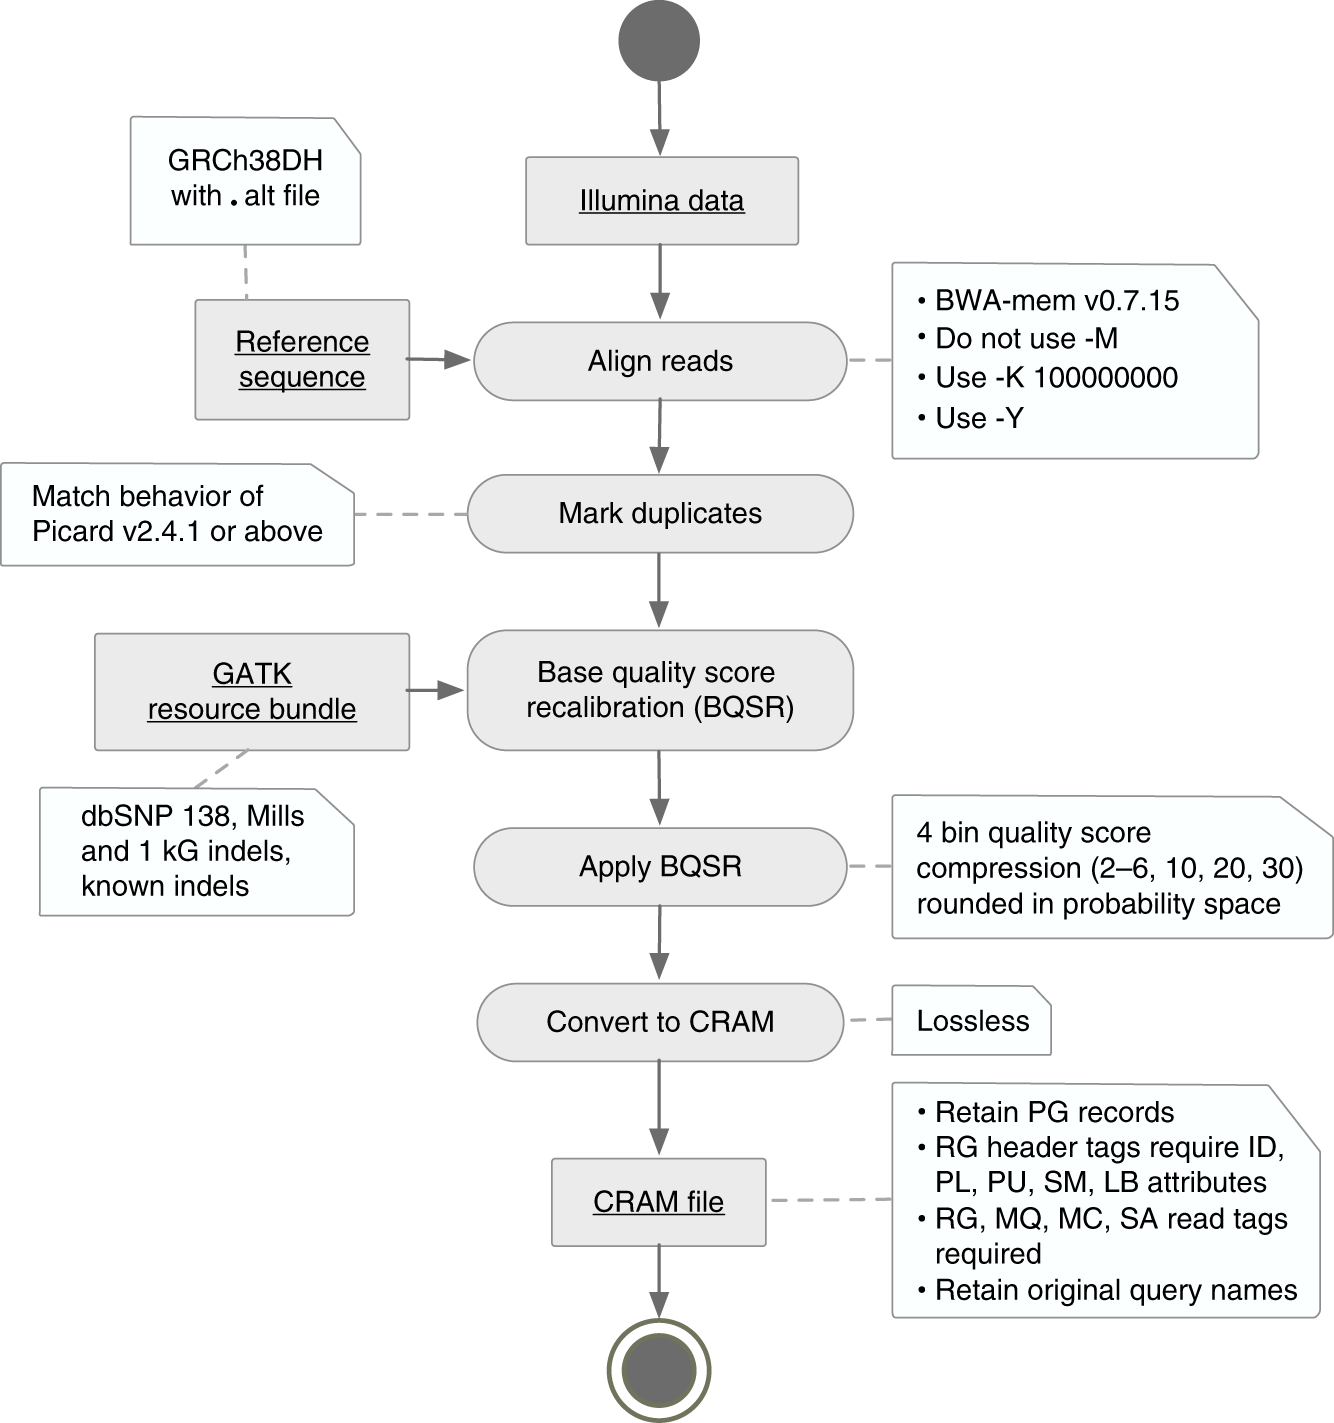 Functional equivalence of genome sequencing analysis